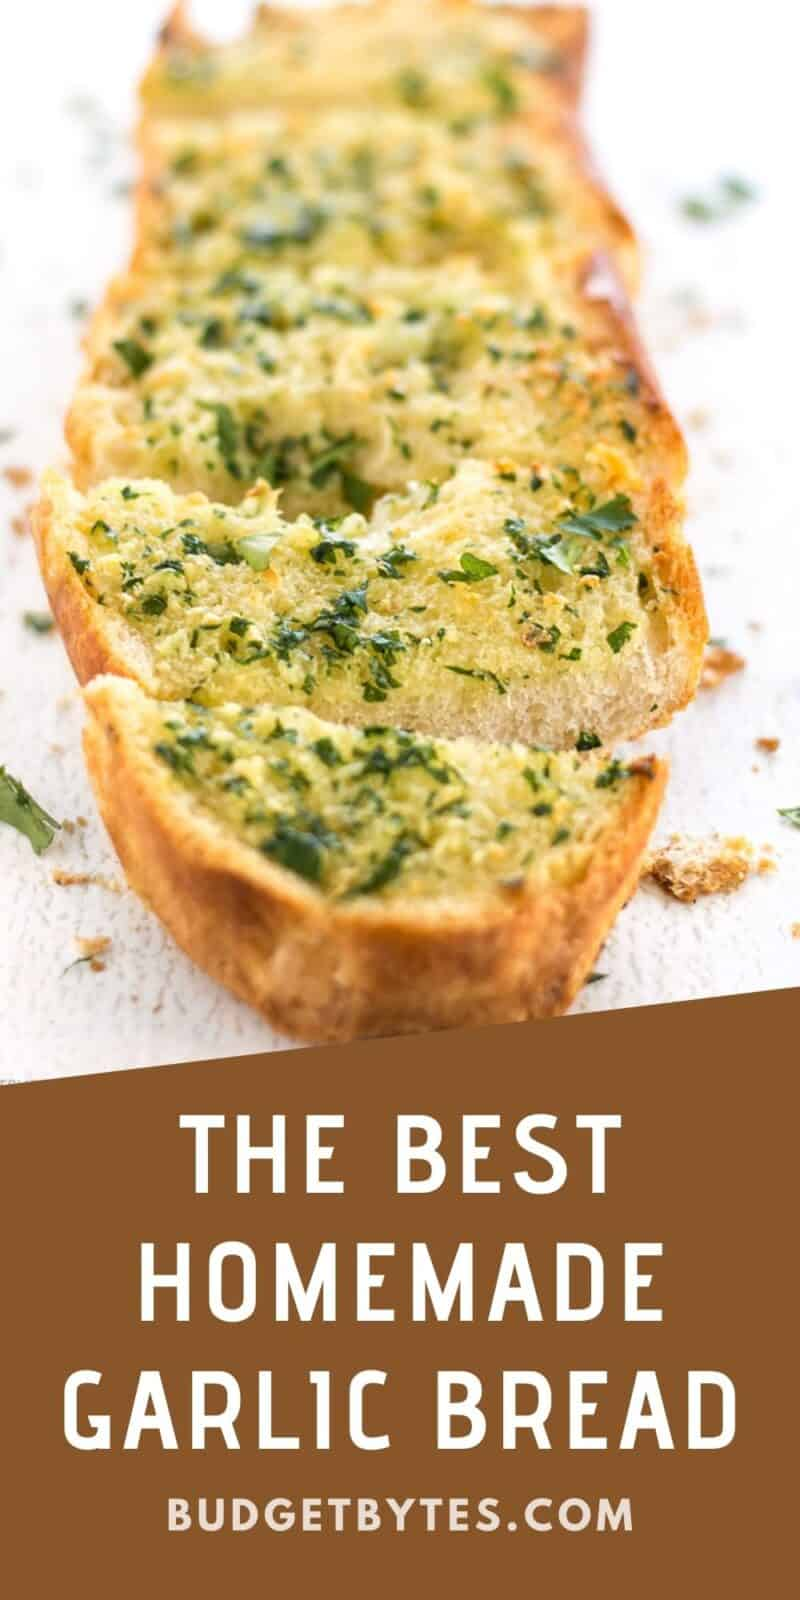 Close up front view of sliced garlic bread